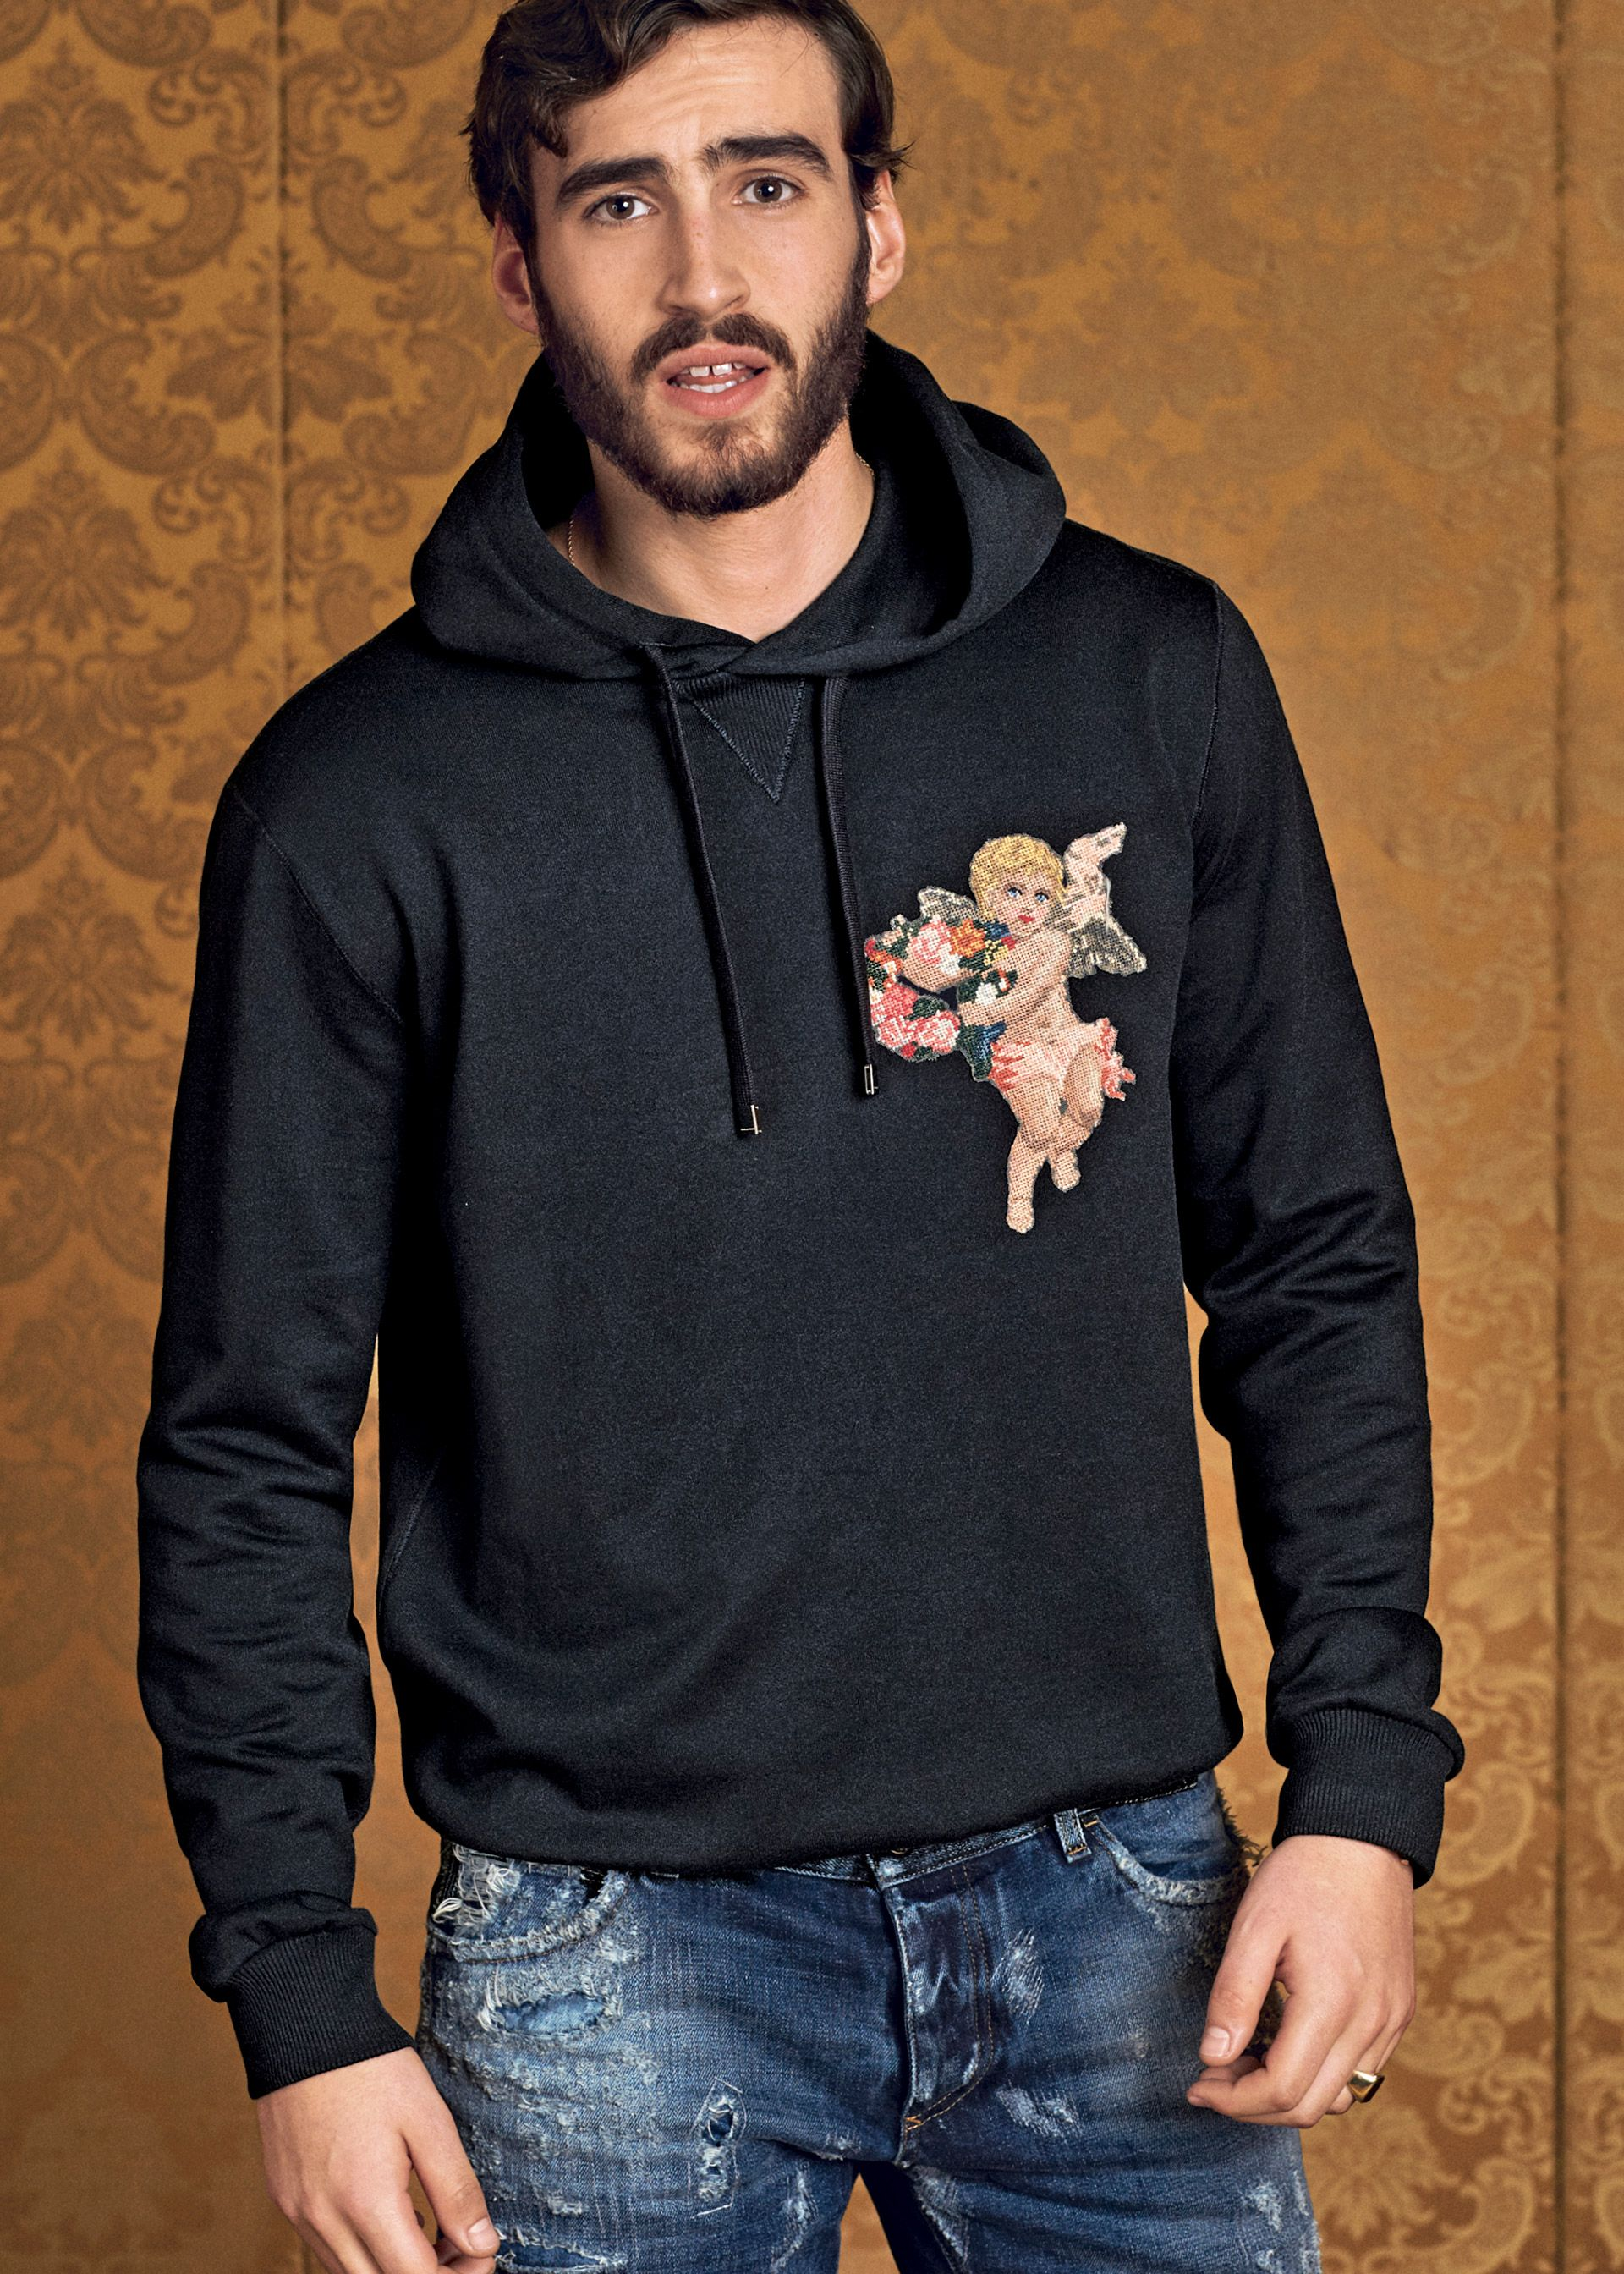 e49ee847ce Discover the new Dolce & Gabbana Men's Romantic Sicily Collection for Fall  Winter 2016 2017 and